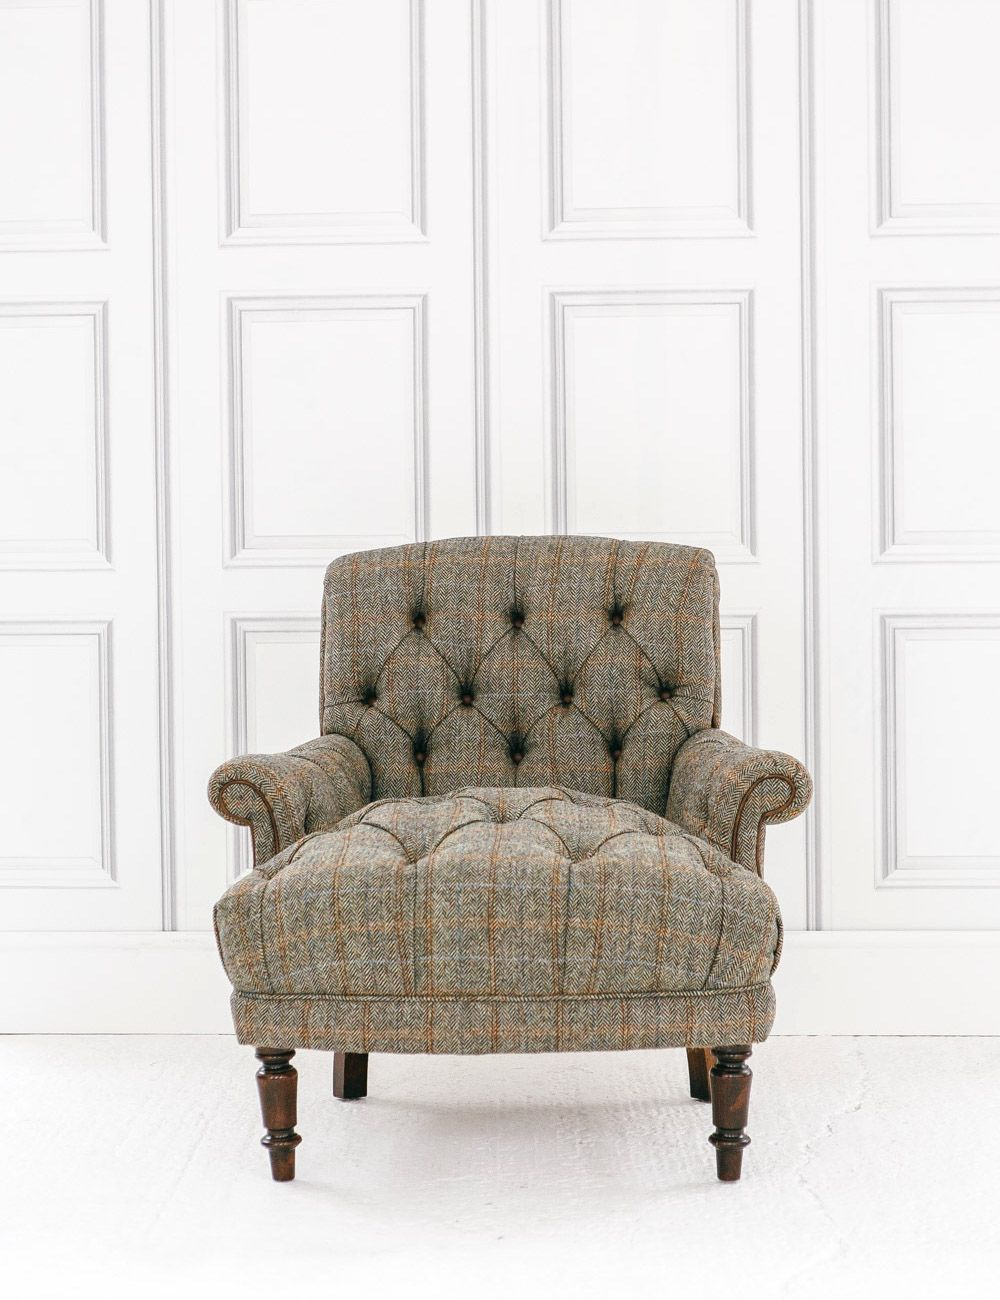 chesterfield chair store armchair tweed furniture sofa tr bath grey aviator blog mjob lr hayes img harris